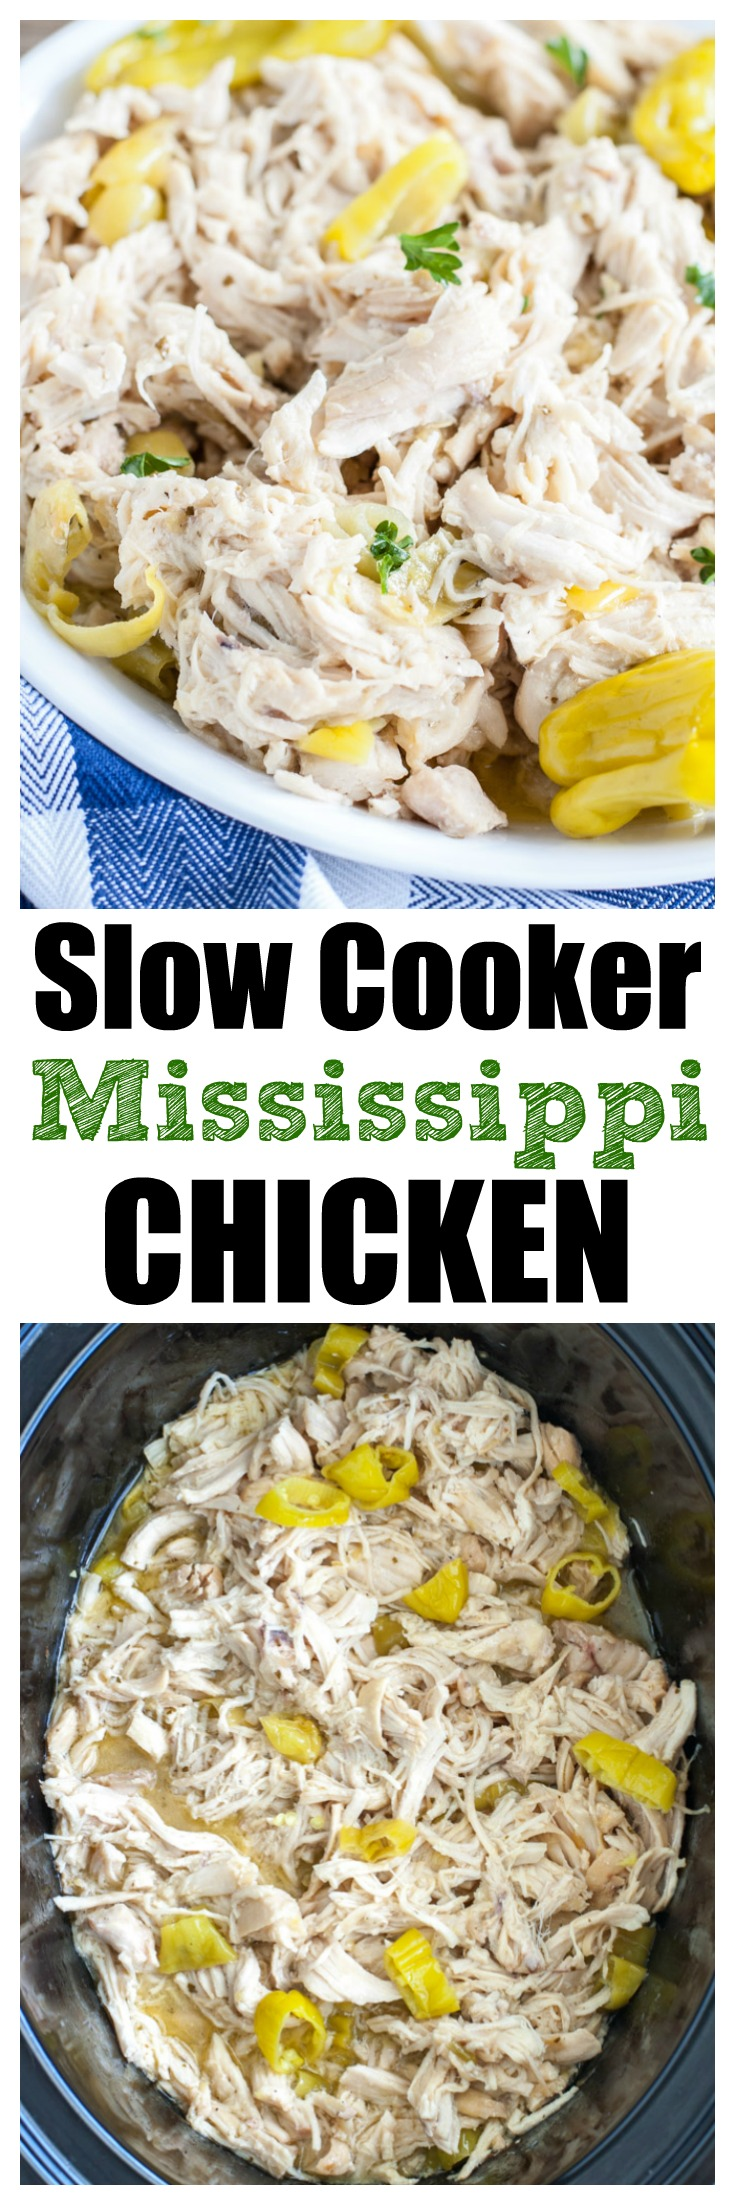 Slow Cooker Mississippi Chicken is an easy meal. Like Mississippi but with chicken. The chicken can be used for many things like tacos, nachos or with mashed potatoes.